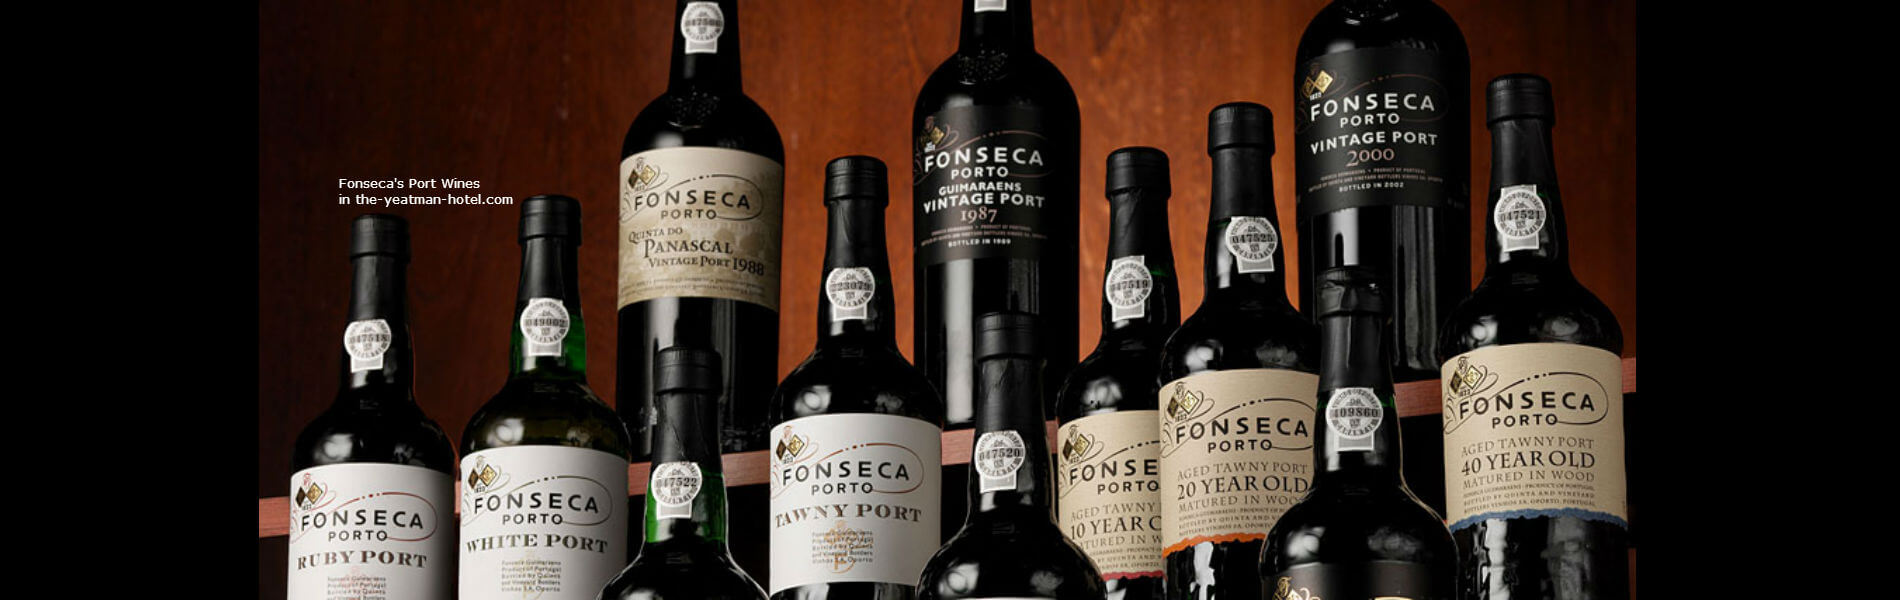 Blend-All-About-Wine-Fonseca-200-Years-Wines-Slider